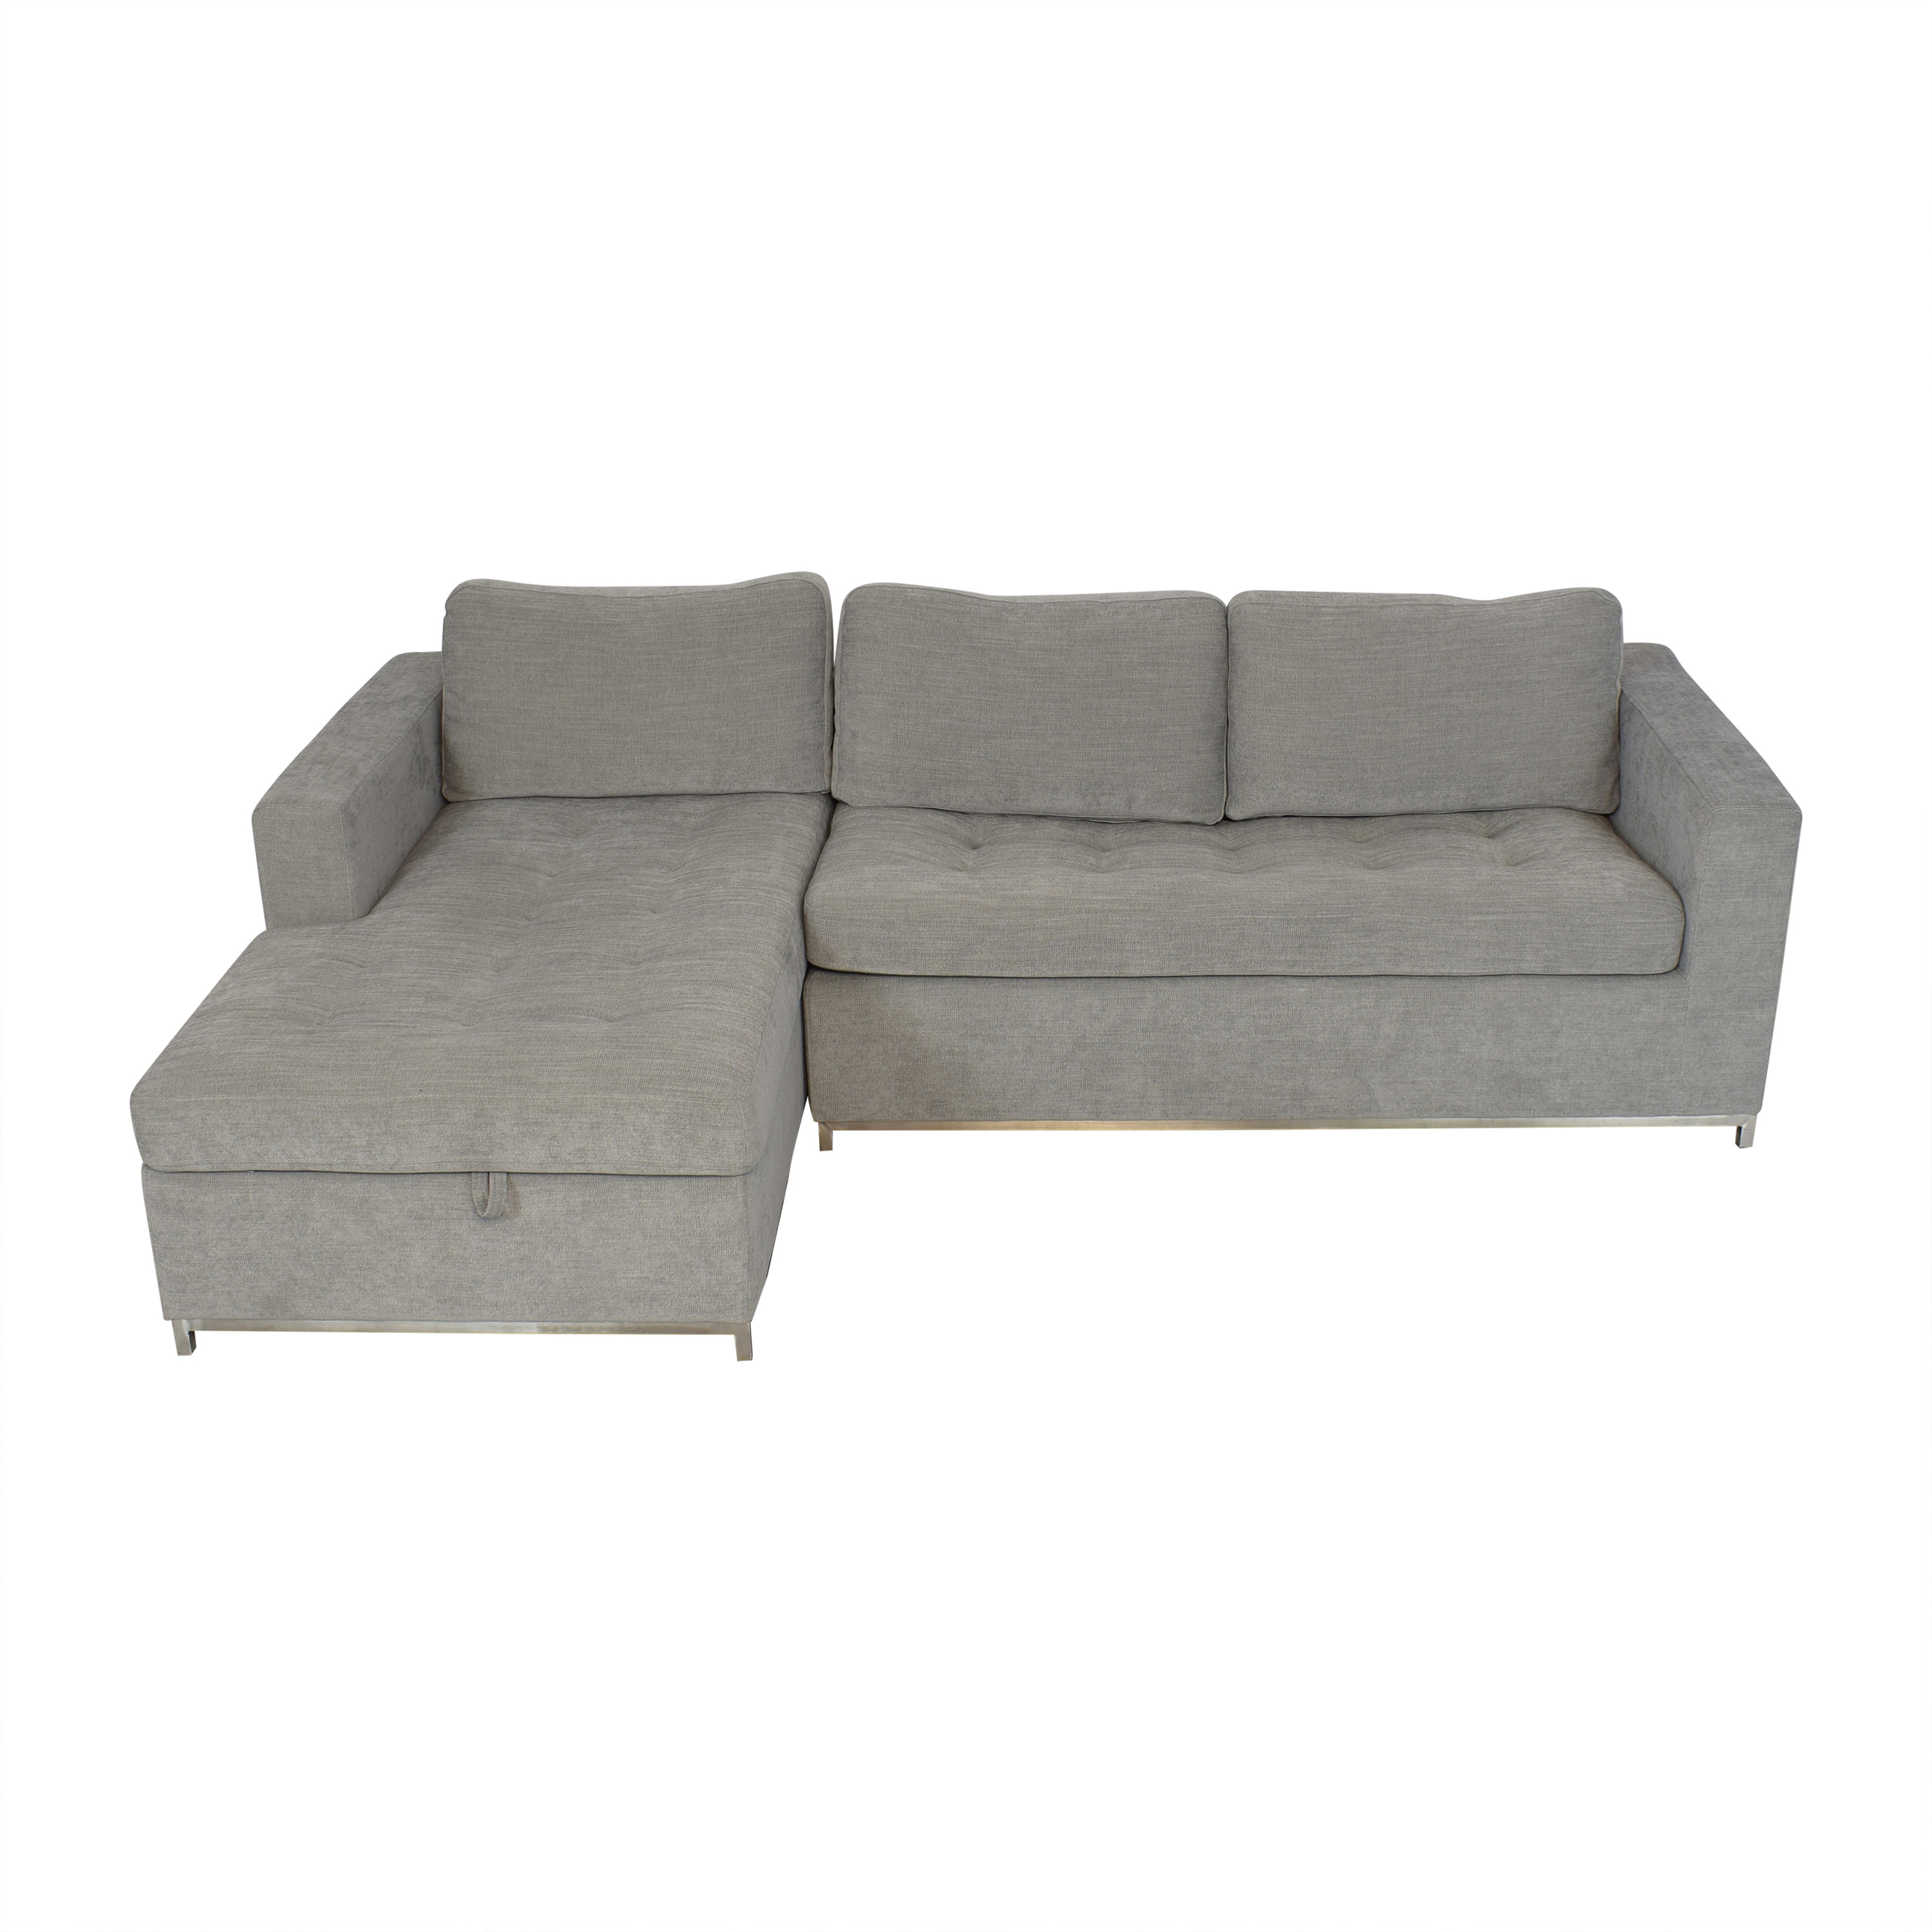 Article Article Soma Chaise Sofa Bed for sale